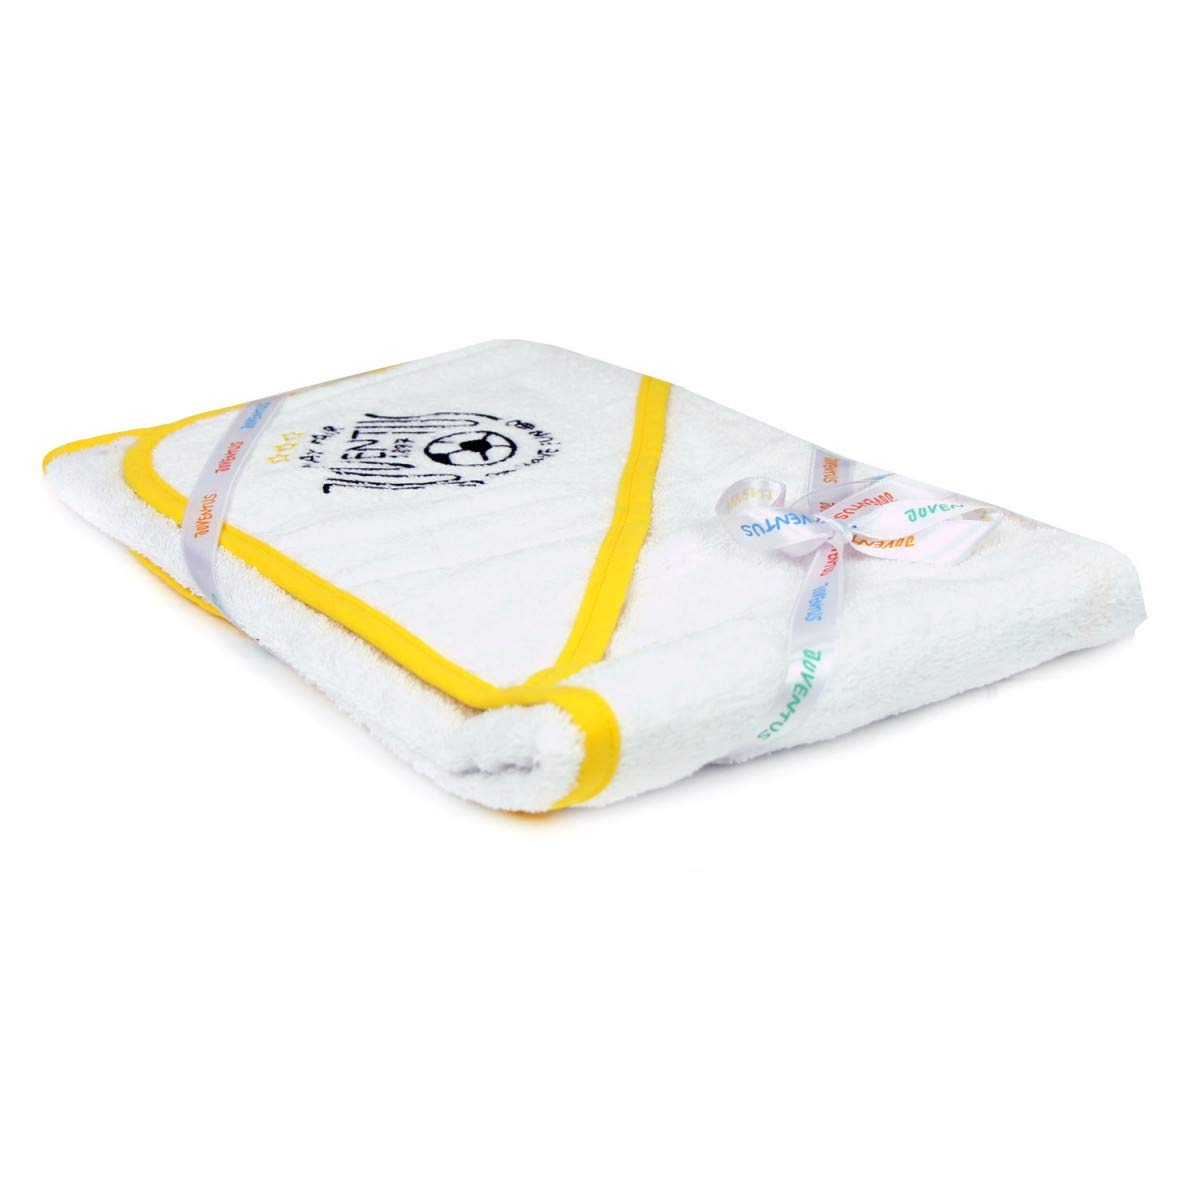 FC Juventus Triangle Baby Newborn Bath Towel with Hood Sponge Cotton Official